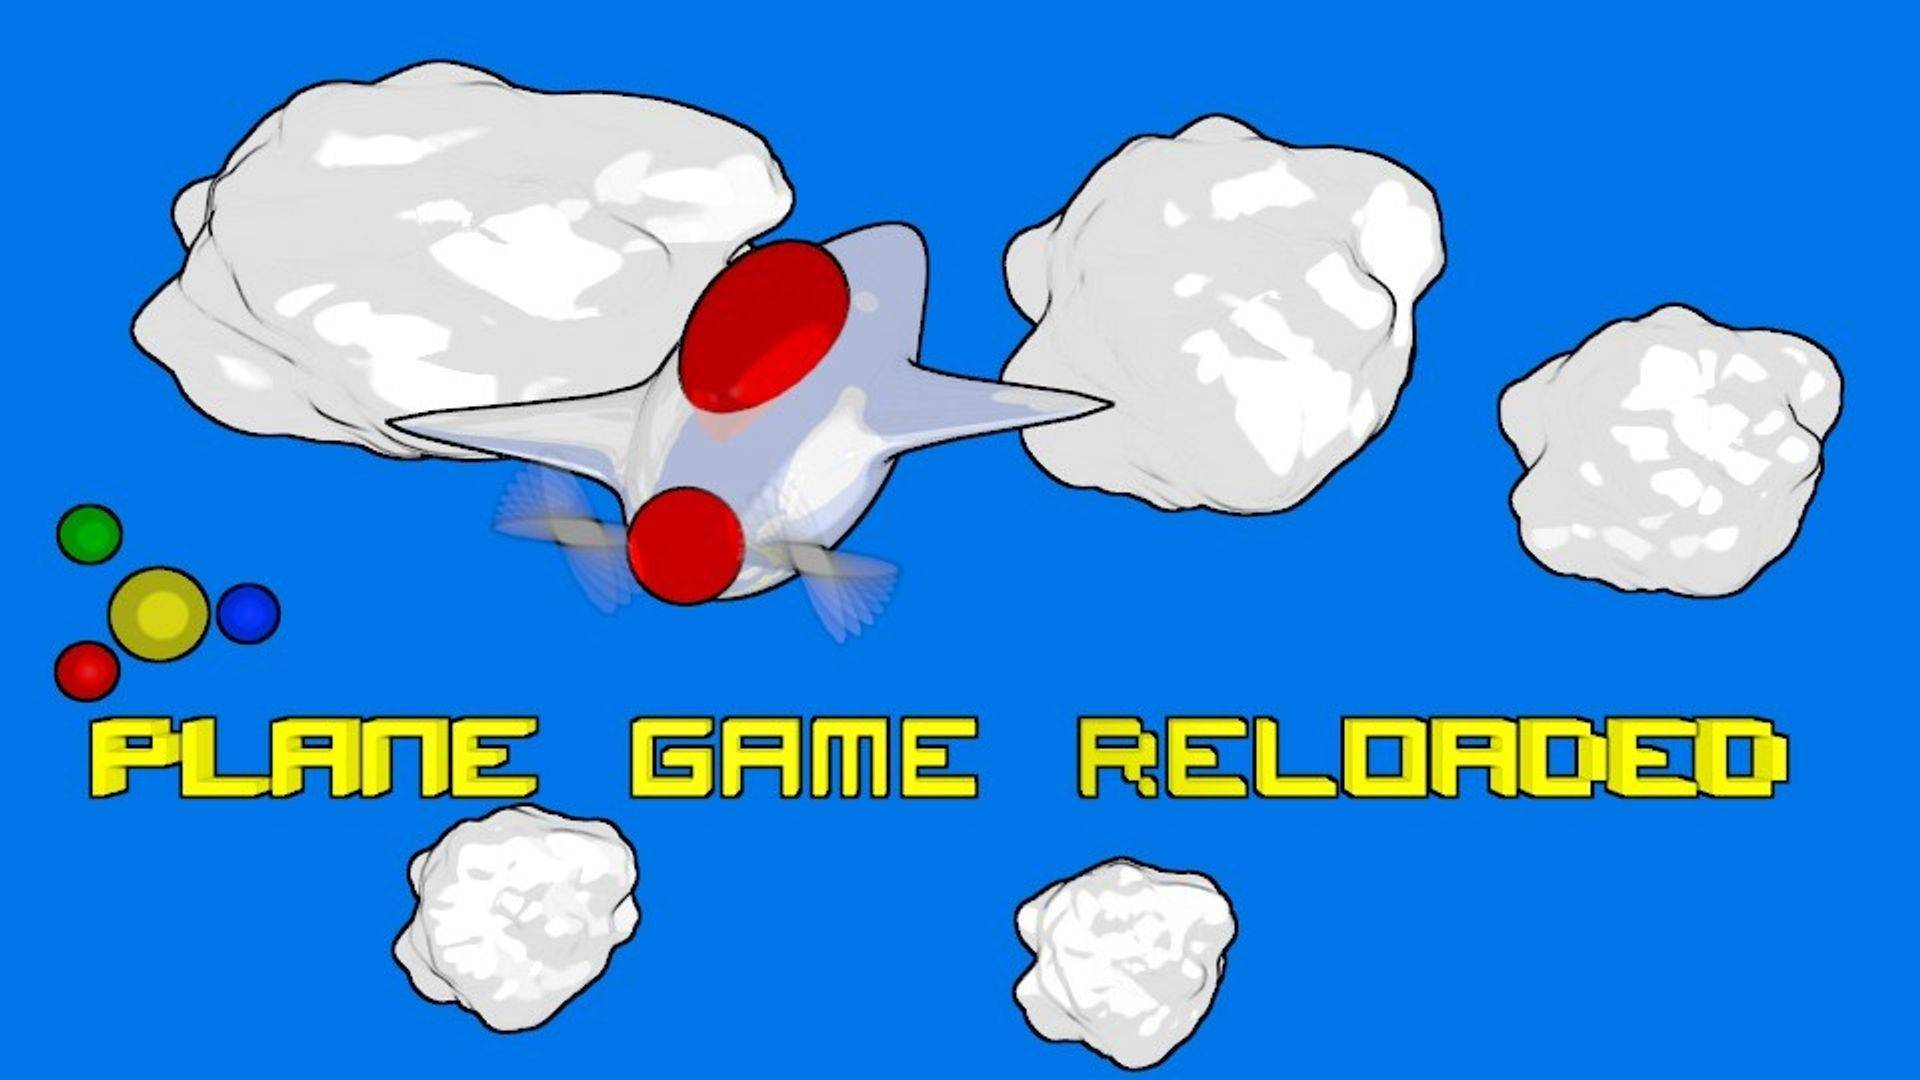 Play our plane game reloaded demo for windows 64 bit computers.